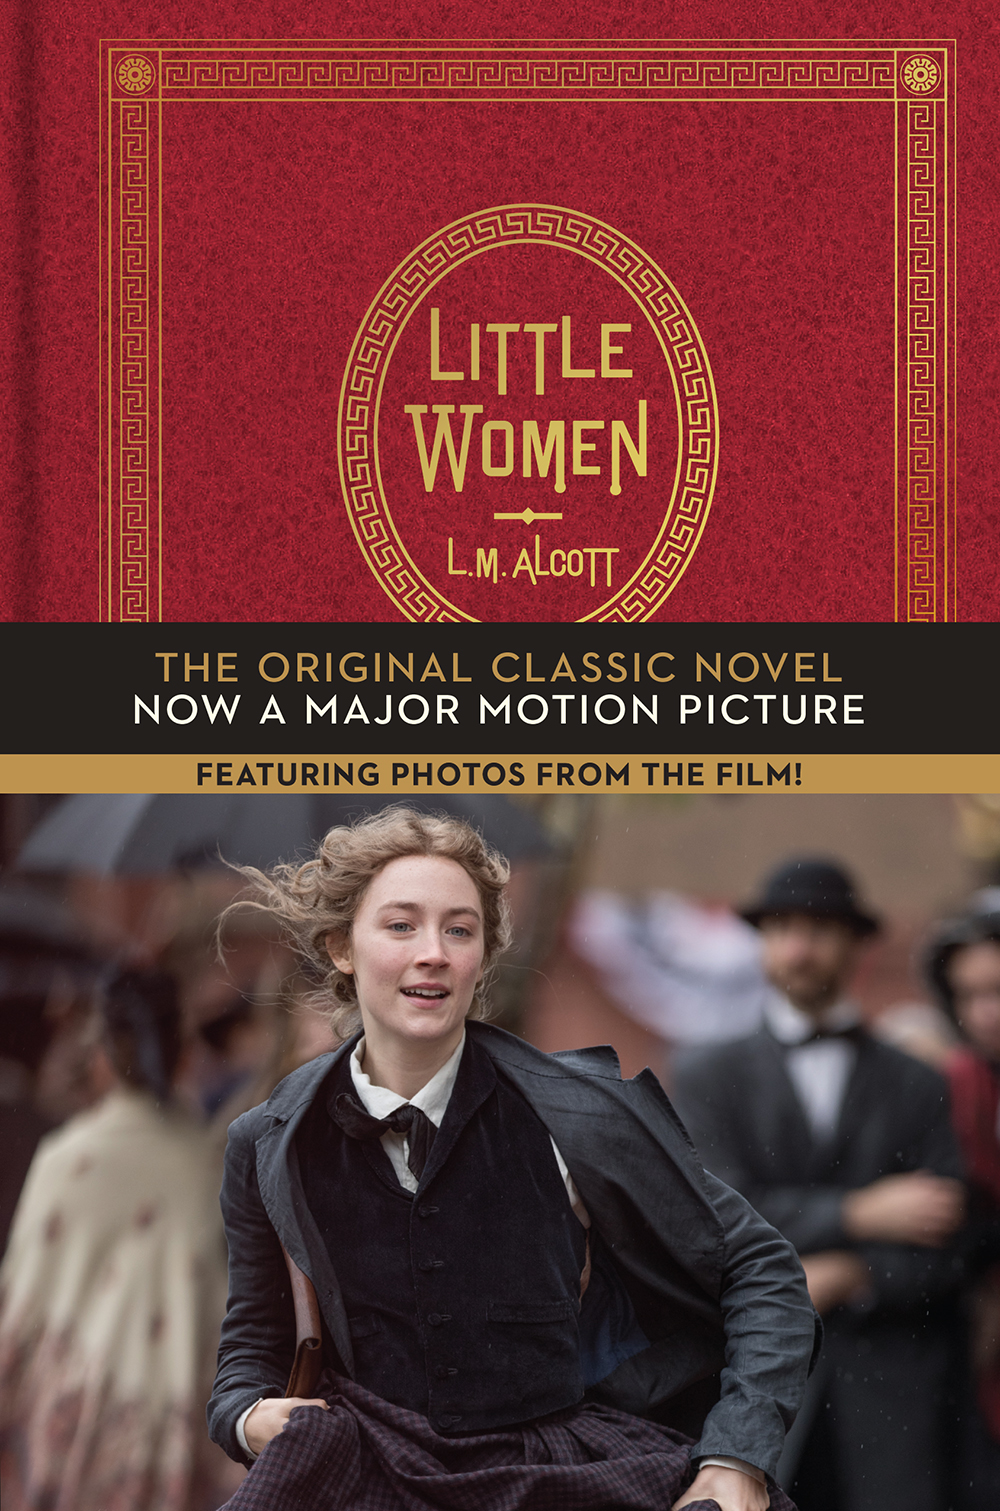 Abrams to Publish 'Little Women' Movie Tie-Ins